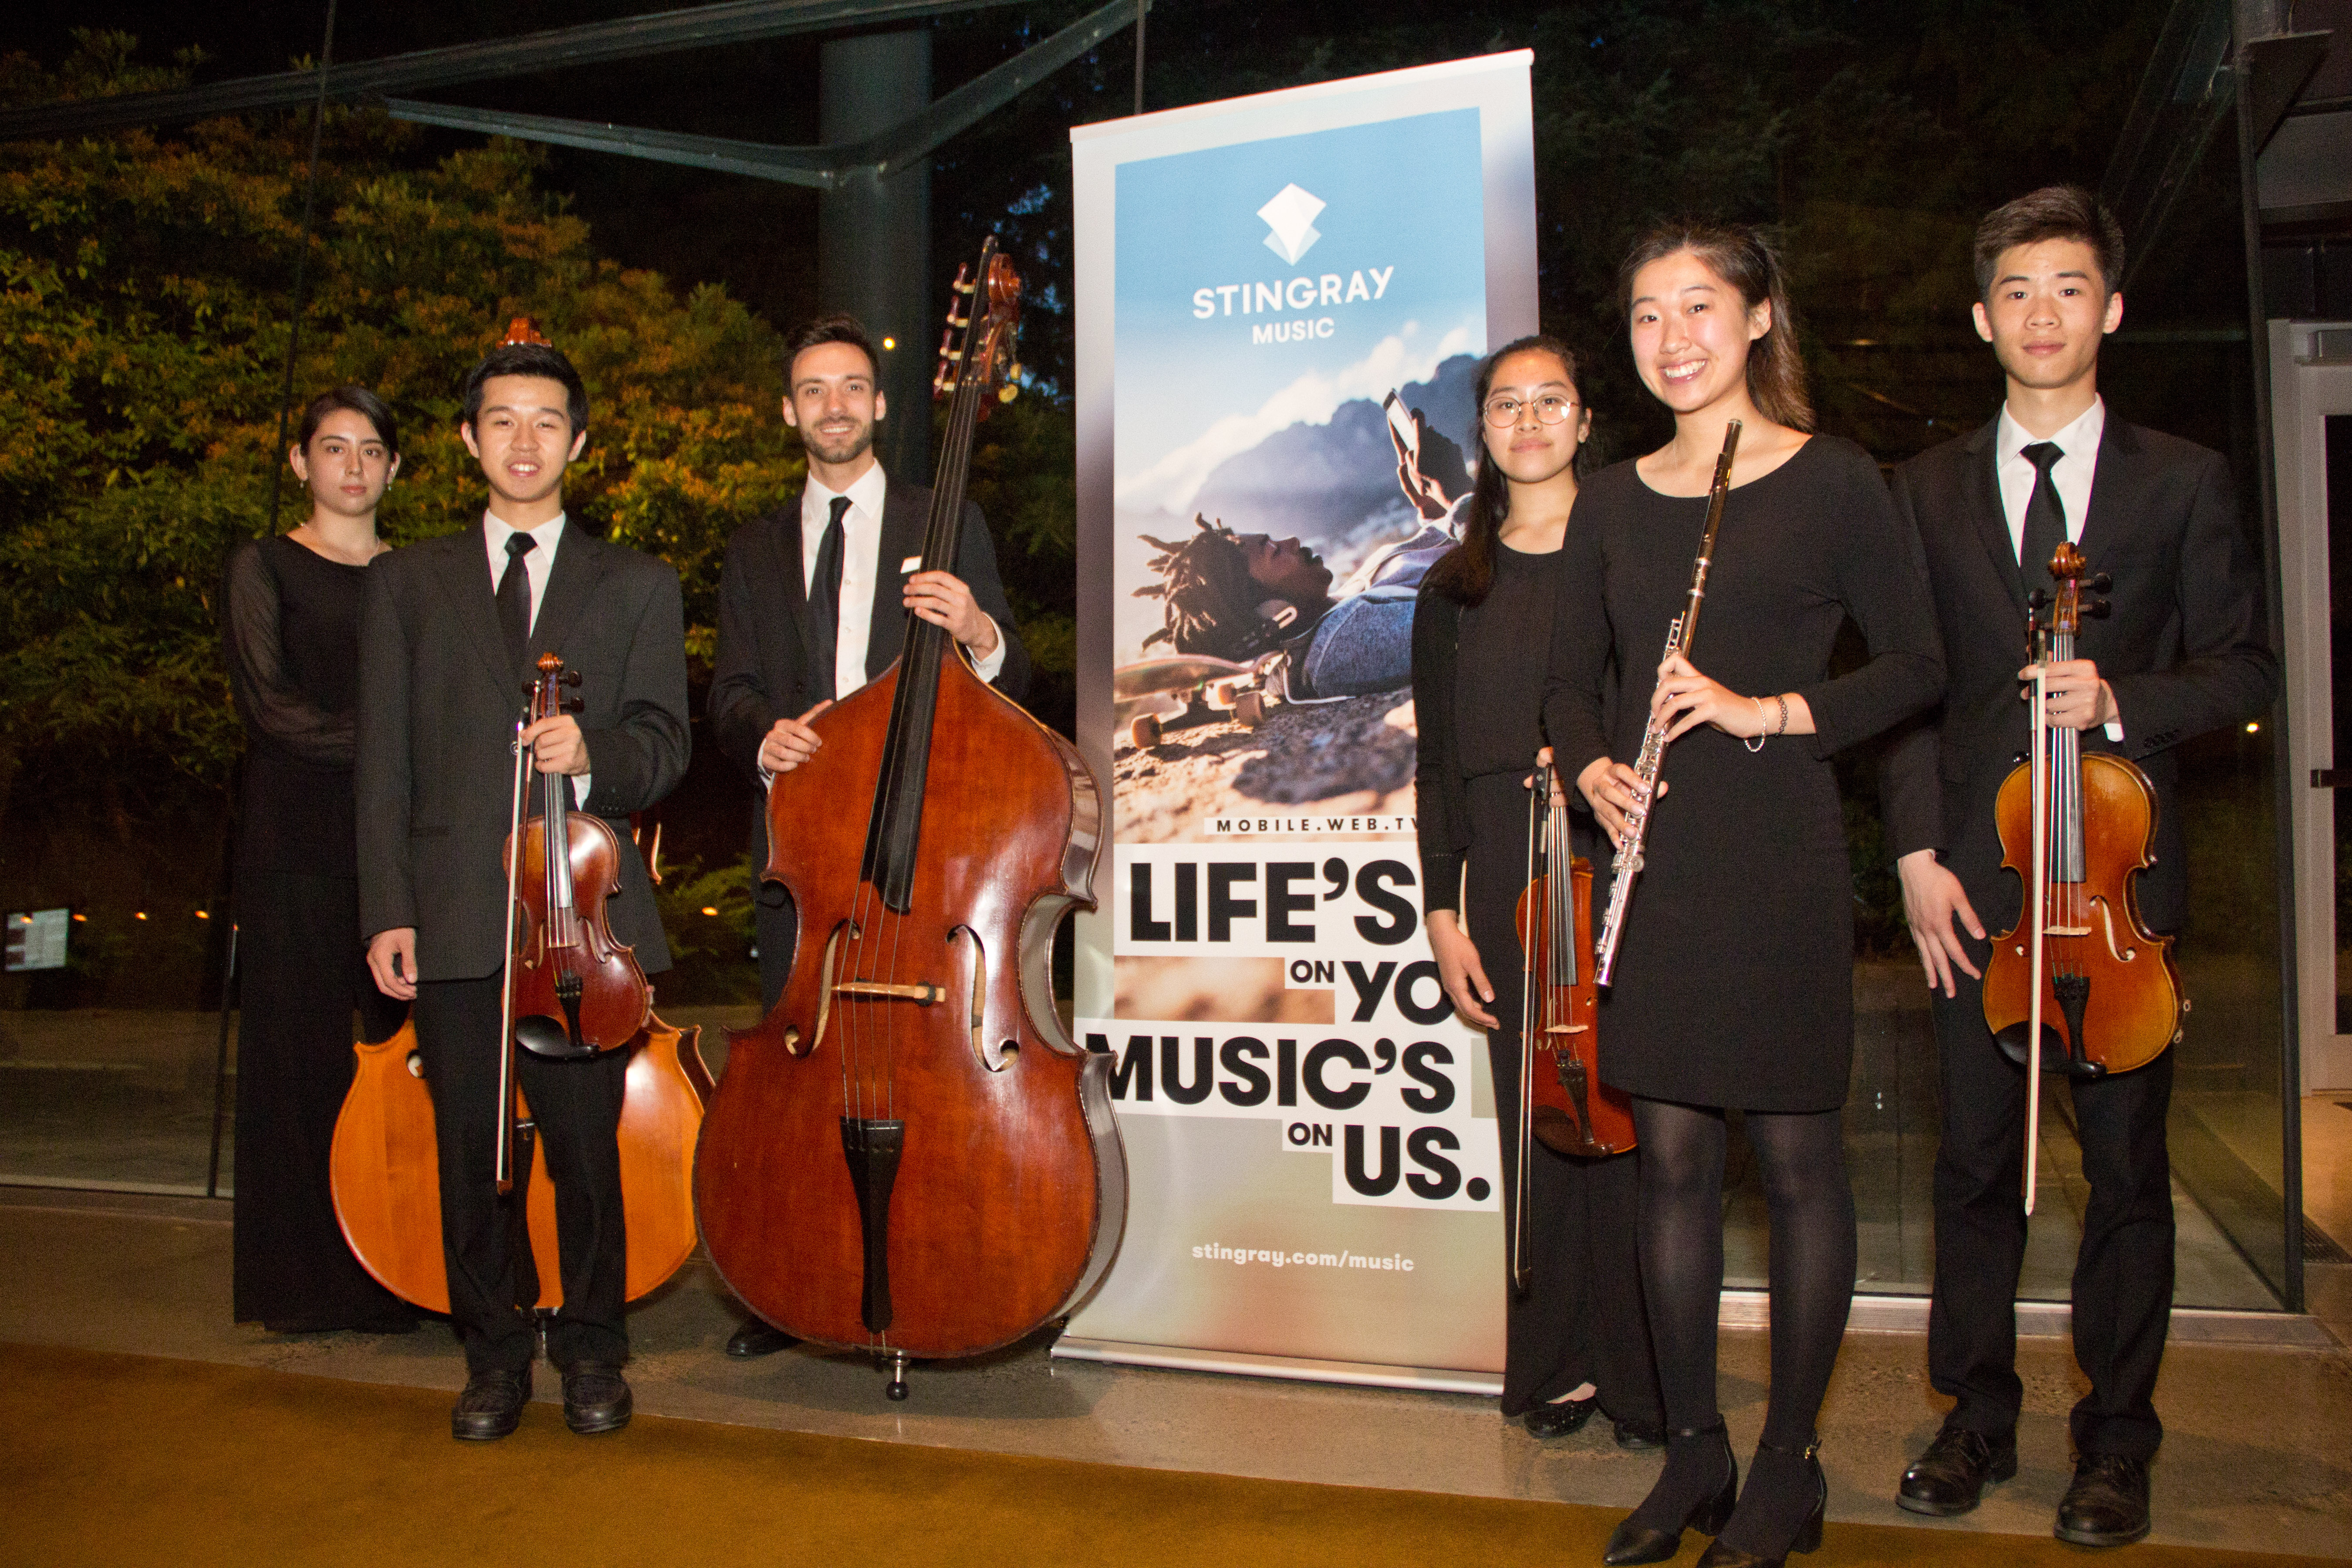 From left to right: Naomie Okubo-Champoux (double bass), Jeremy Ho (violin), Jacques Forest (double bass), Britney Do (viola), Kelly Li (flute) and Chris Lu (viola).  Photo credit: Matthew Baird, VSOI